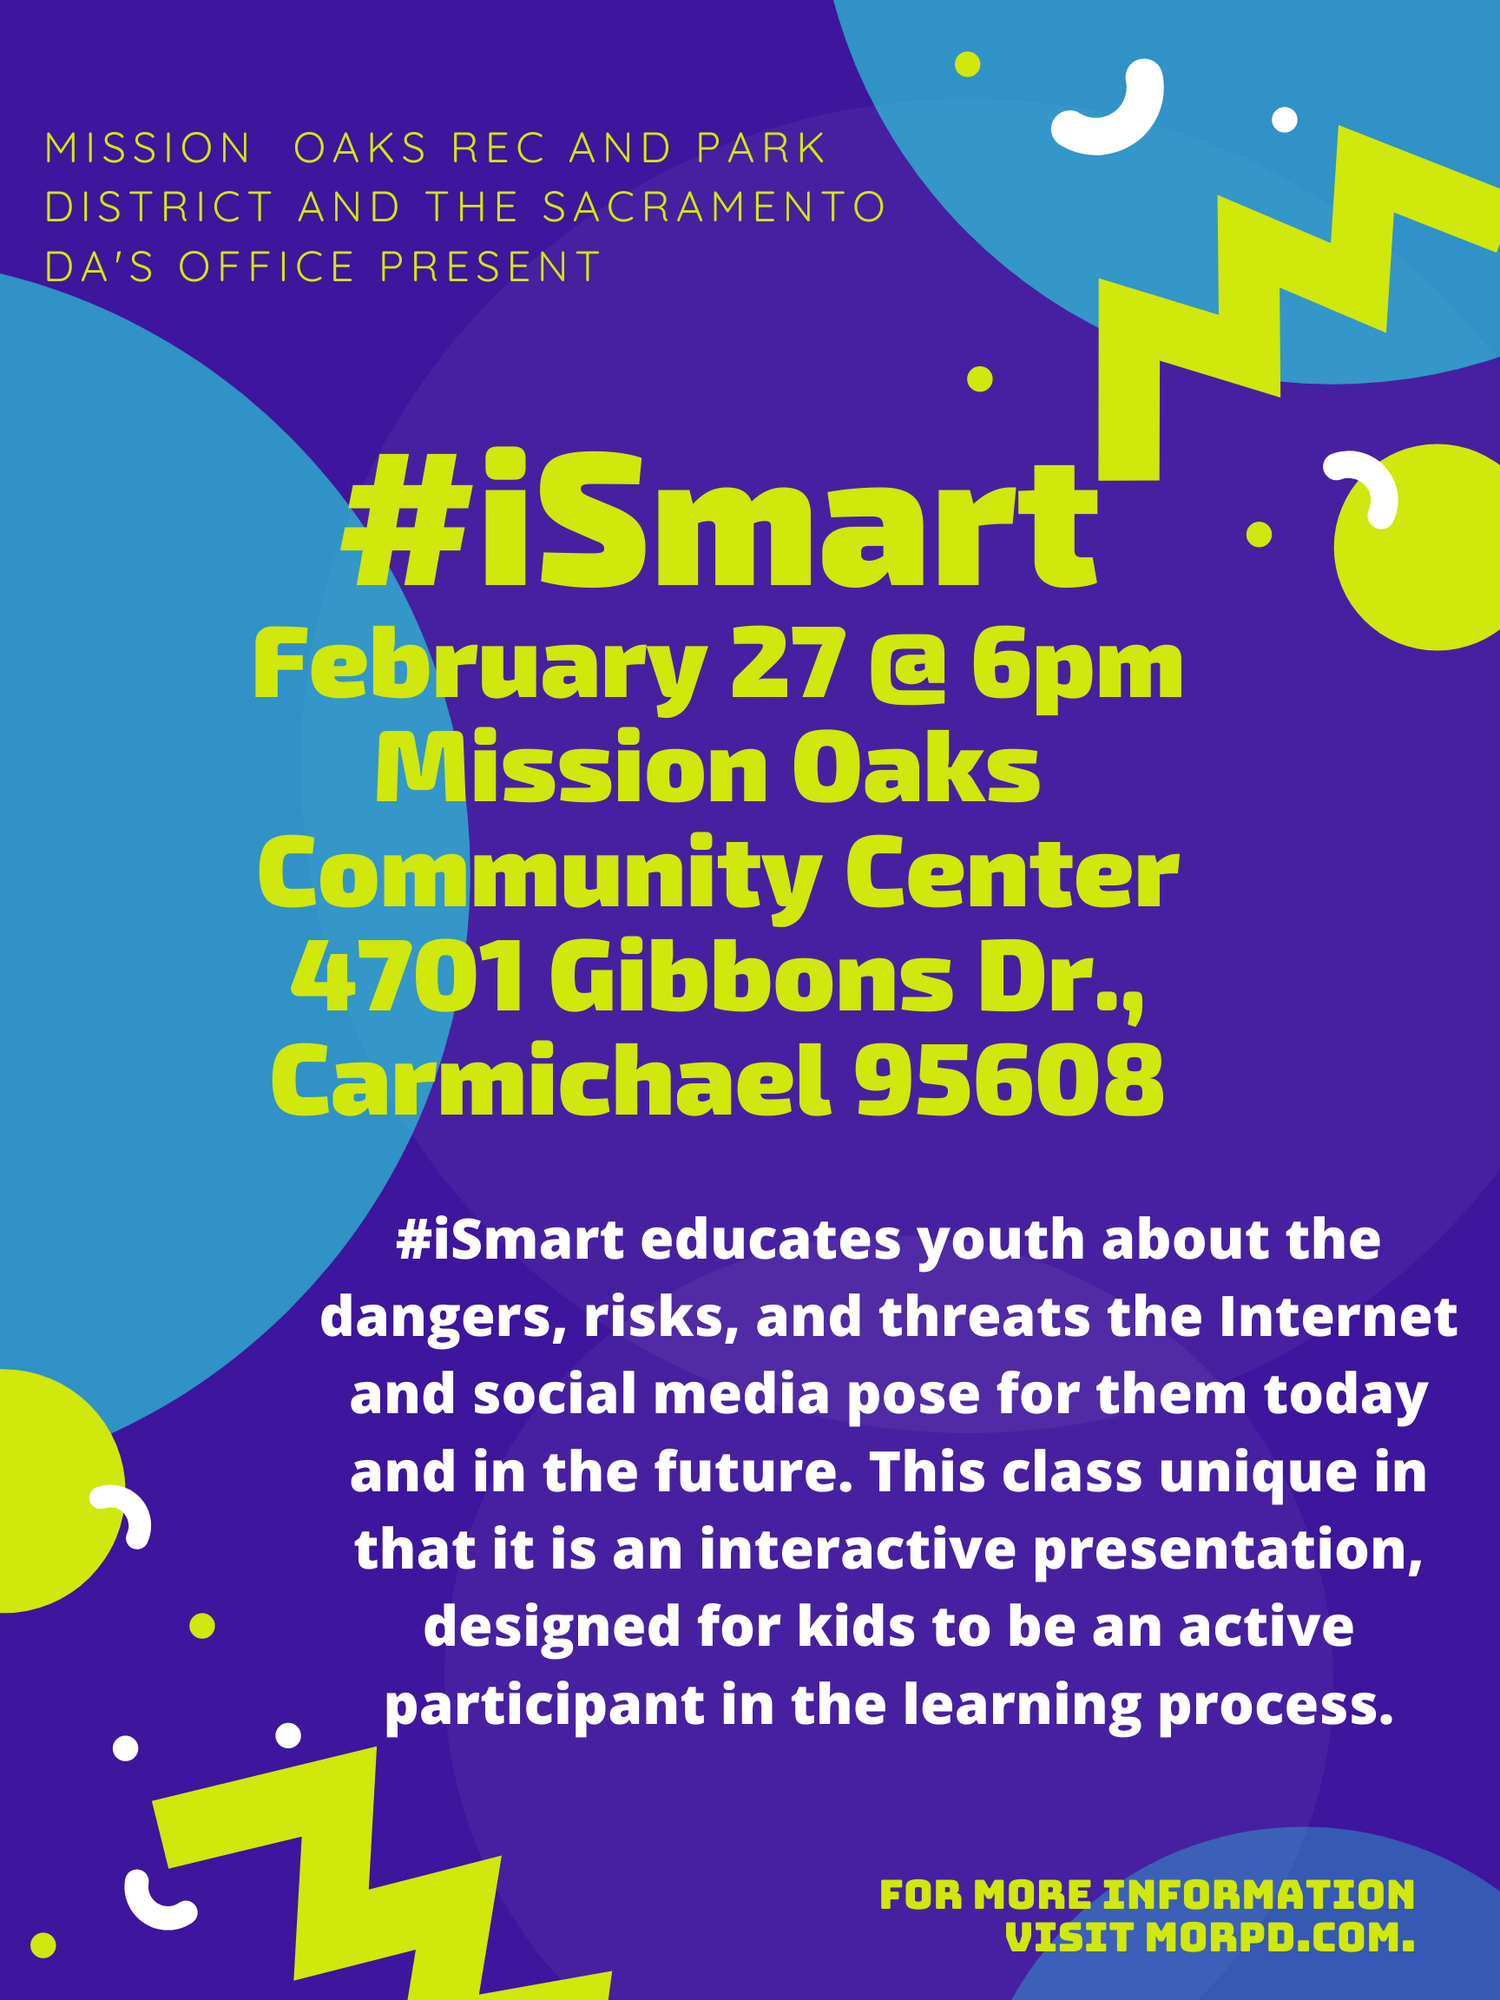 Flyer about #iSmart classes